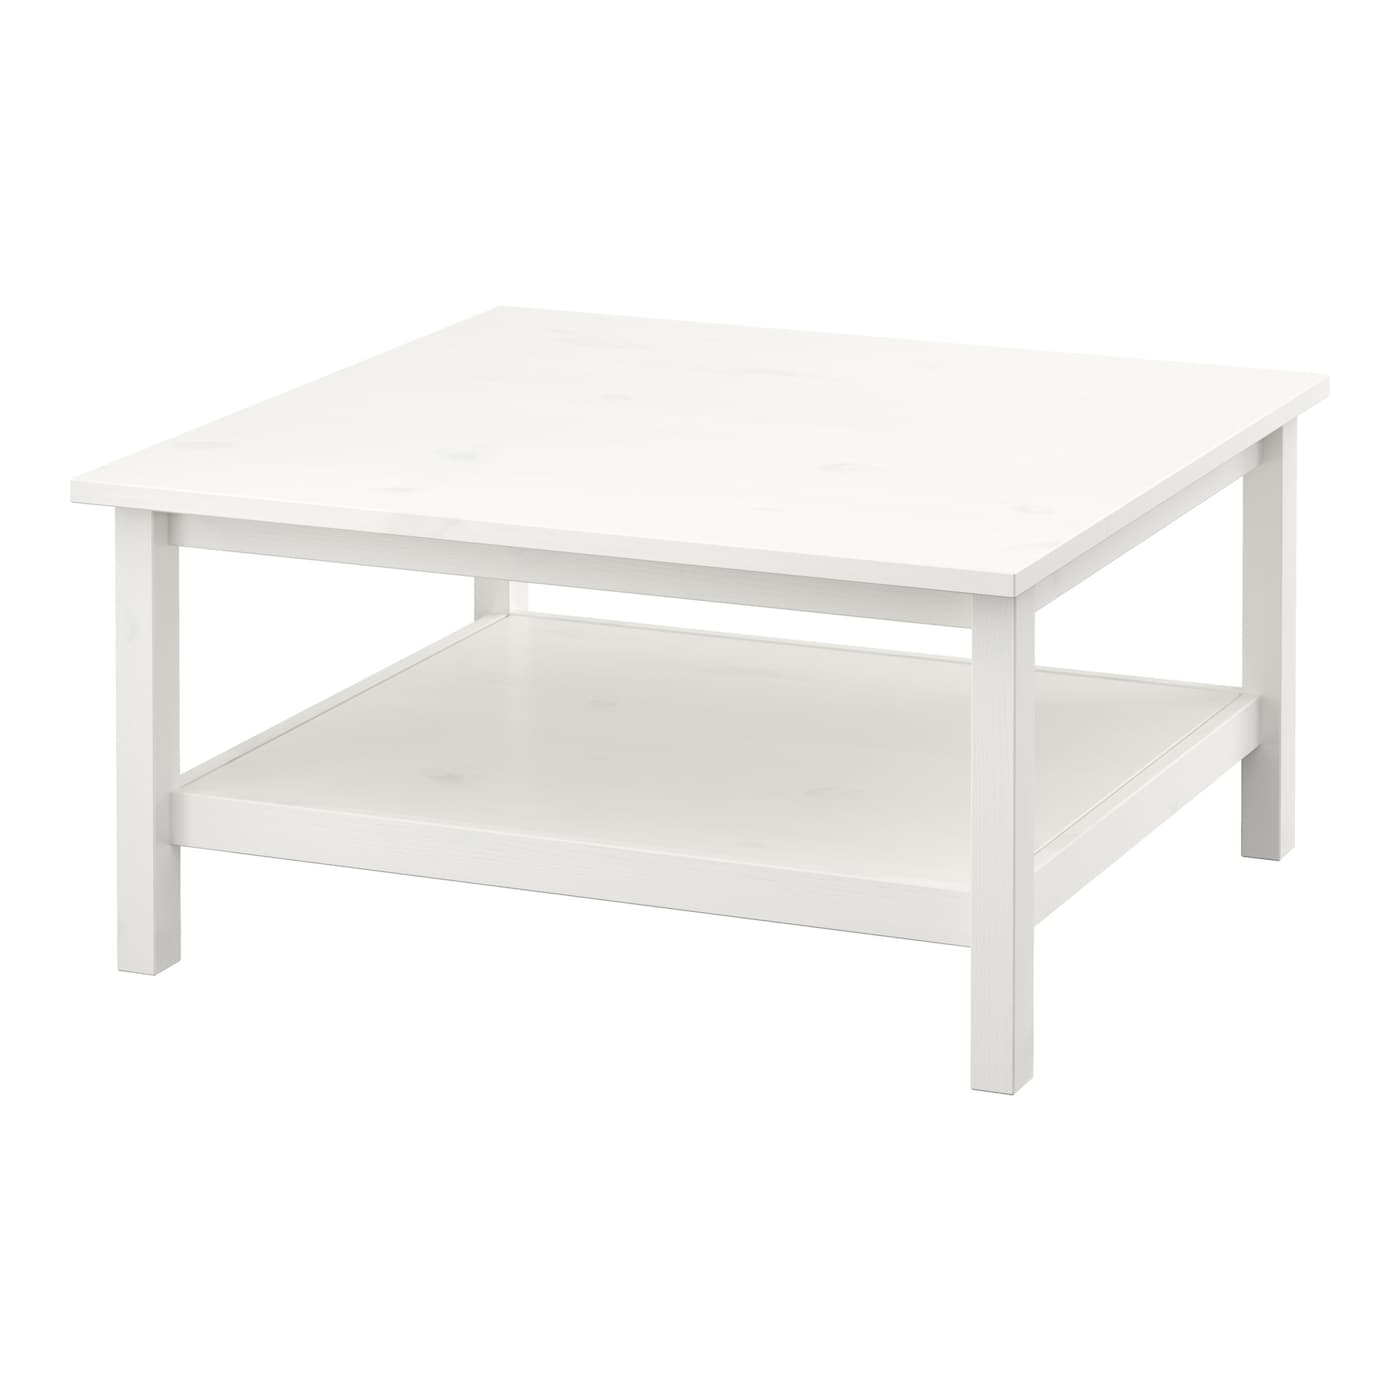 hemnes coffee table white stain 90 x 90 cm ikea. Black Bedroom Furniture Sets. Home Design Ideas